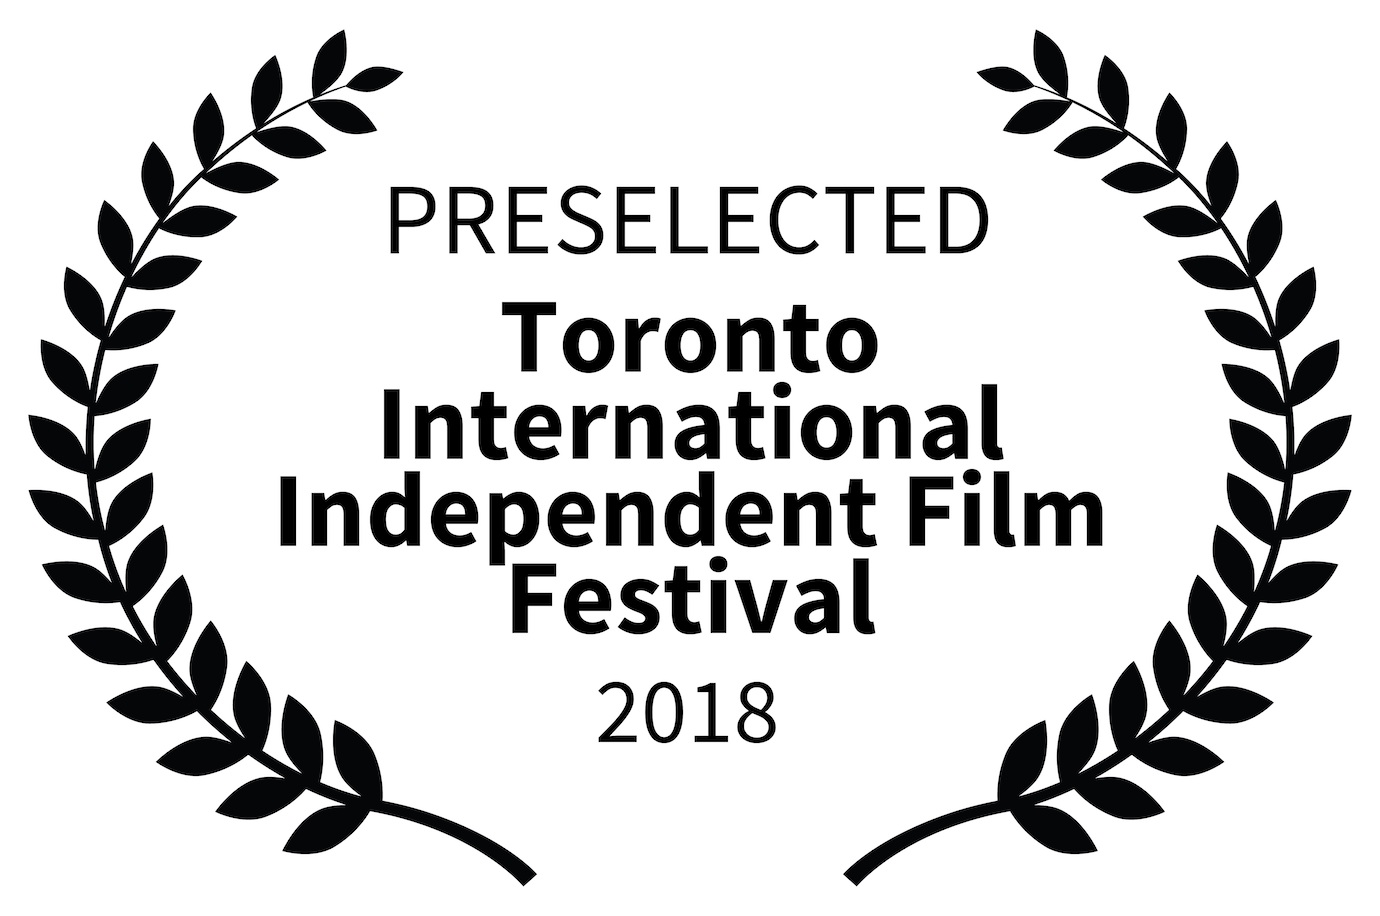 Sofia Wellman - Whats Love Got To Do With It - Film by Sofia Wellman - Toronto International Independent Film Festival - Preselected - 2018